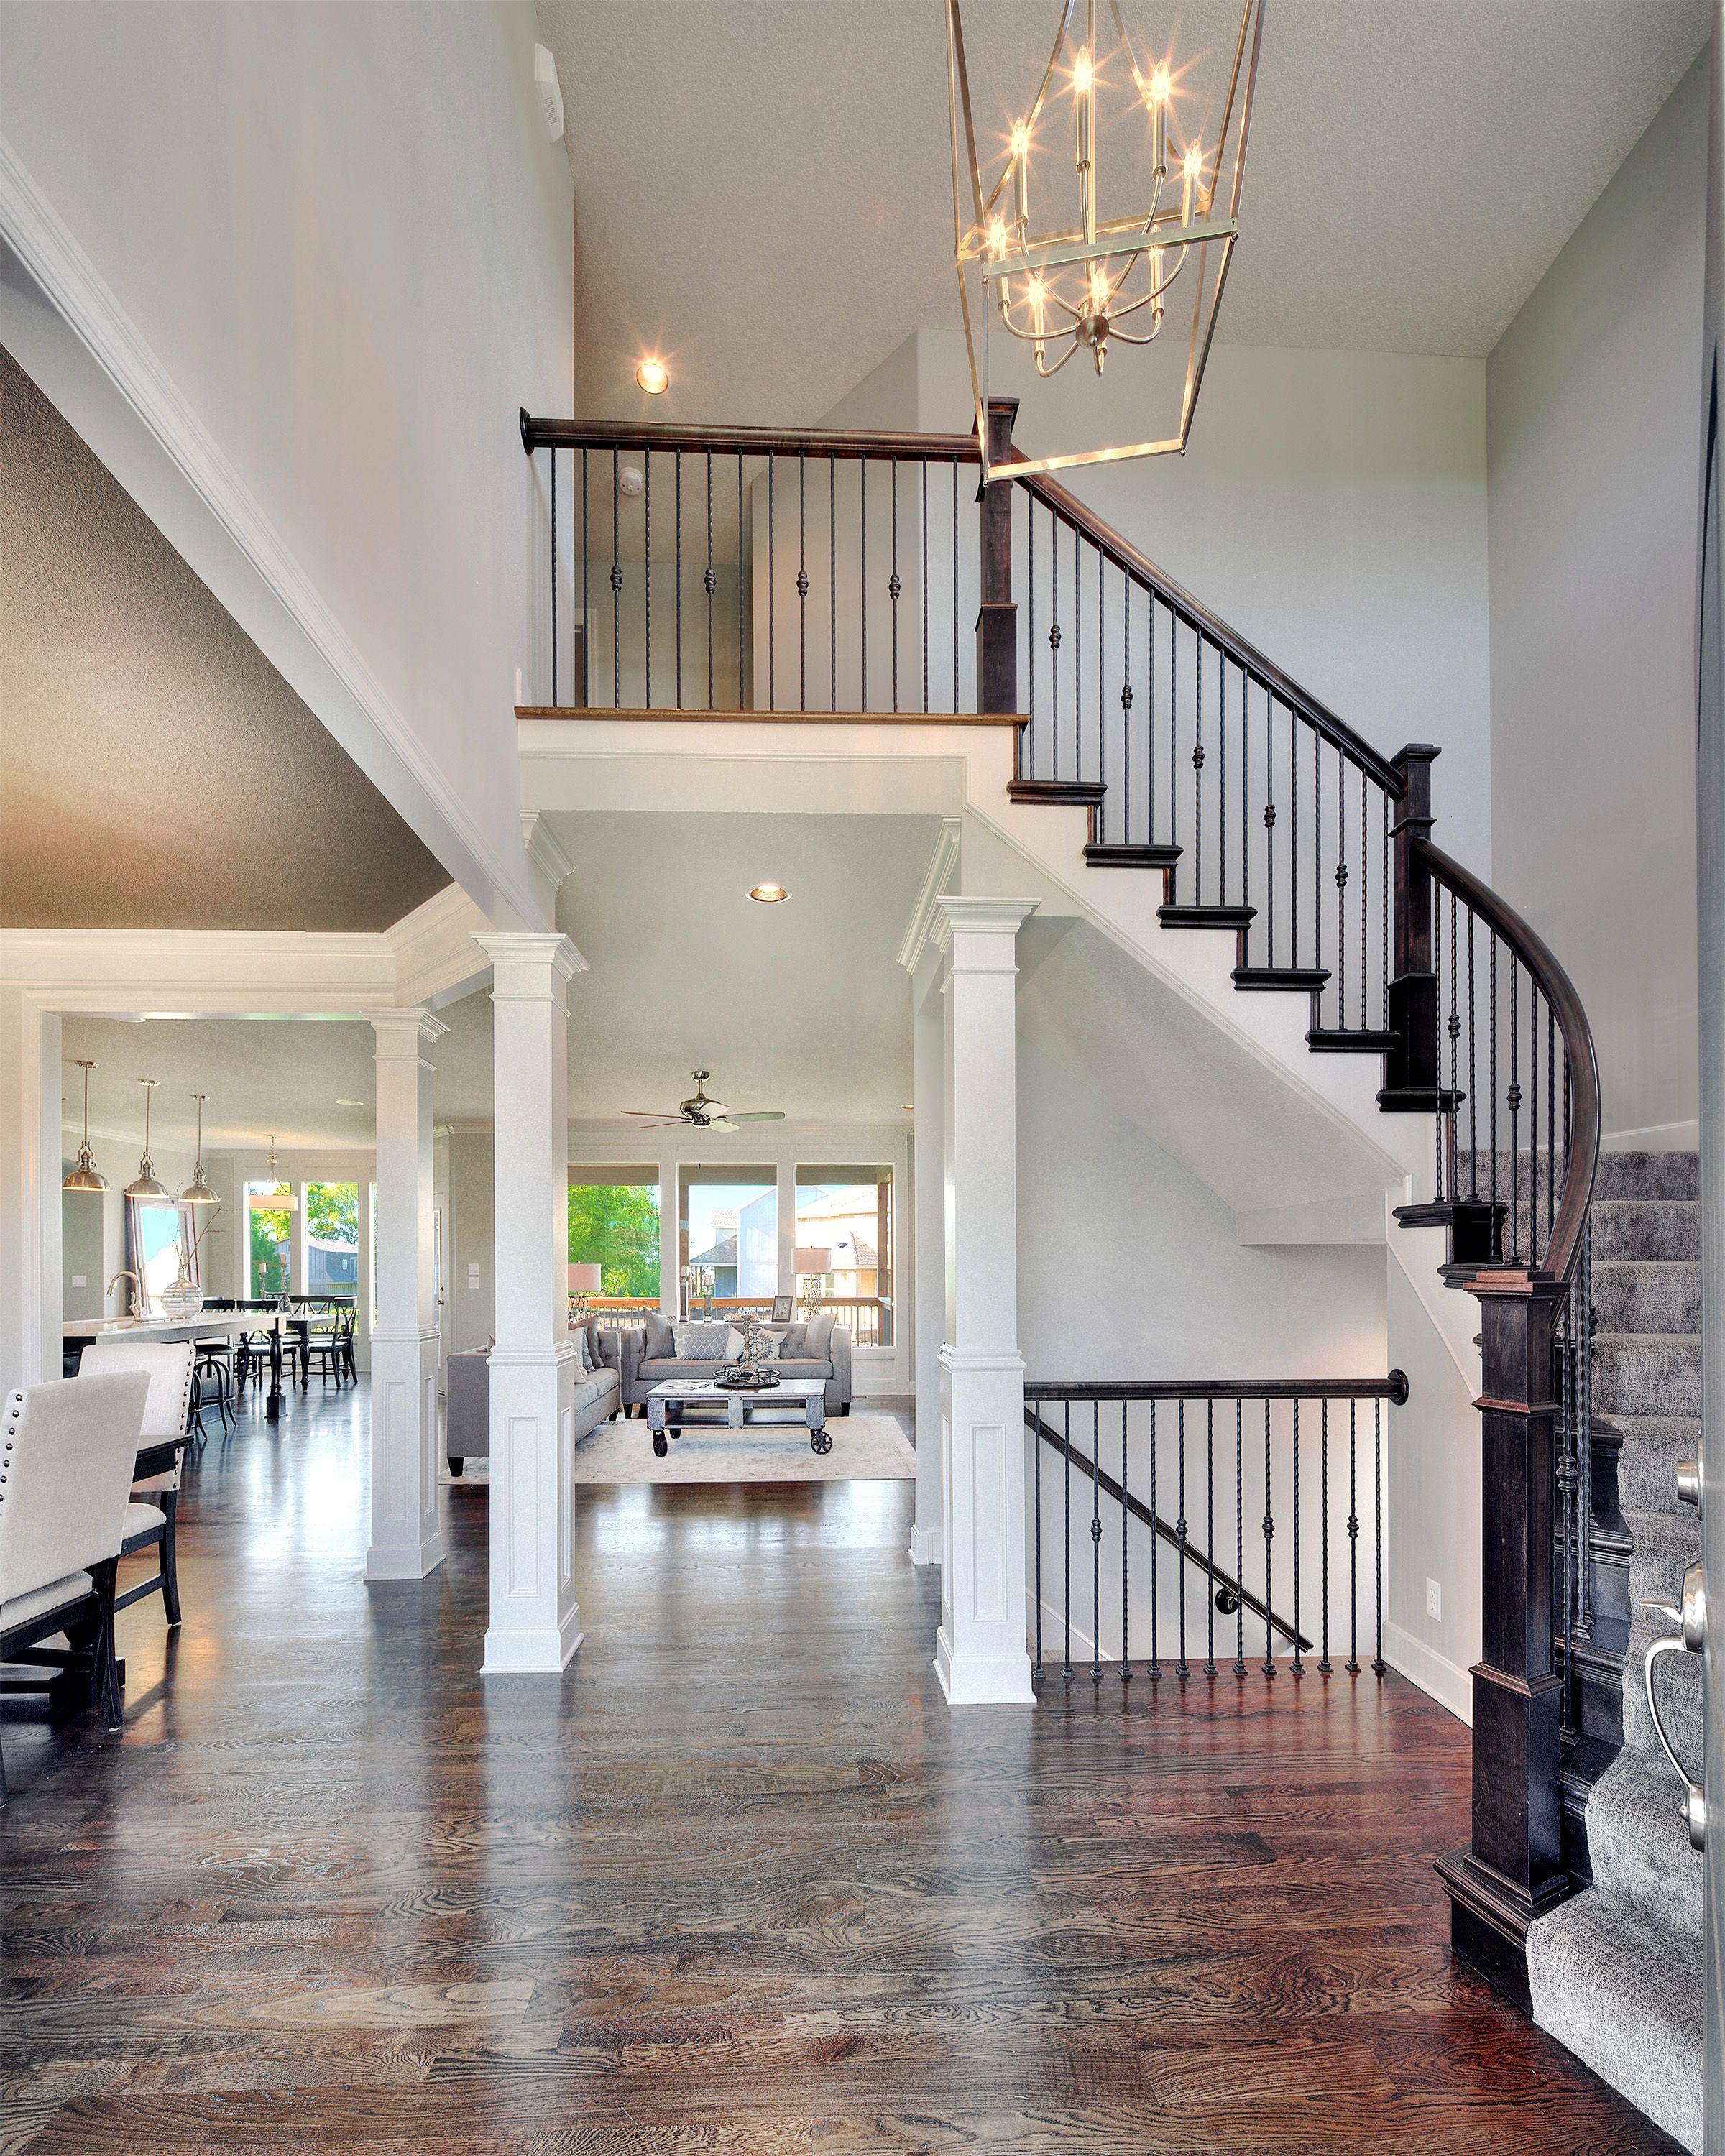 story entry way new home interior design open floor plan light fixtures spindles on curved staircase by bickimer homes http bickimerhomes also rh in pinterest